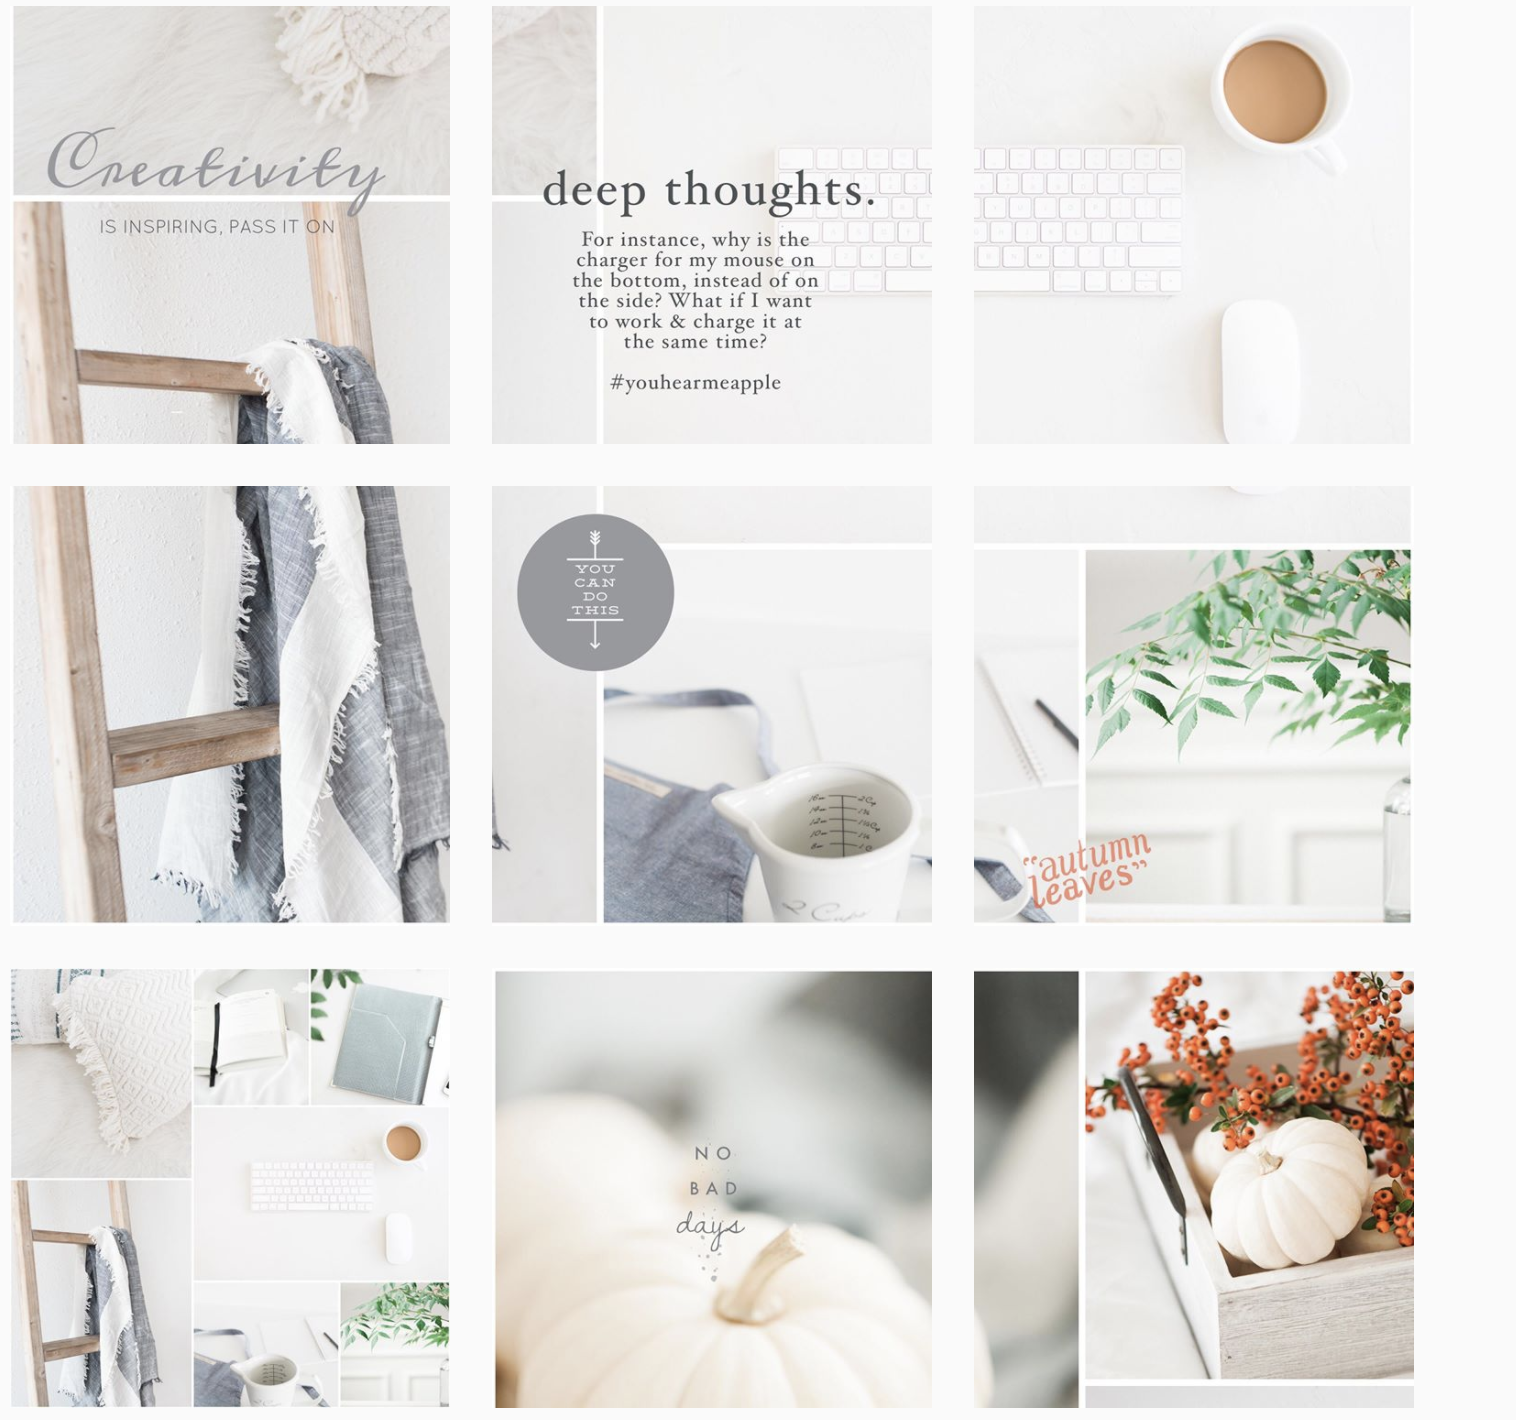 5cb56a069ca1 9 Brilliant Instagram Feed Ideas That Can Make Your Profile Standout ...